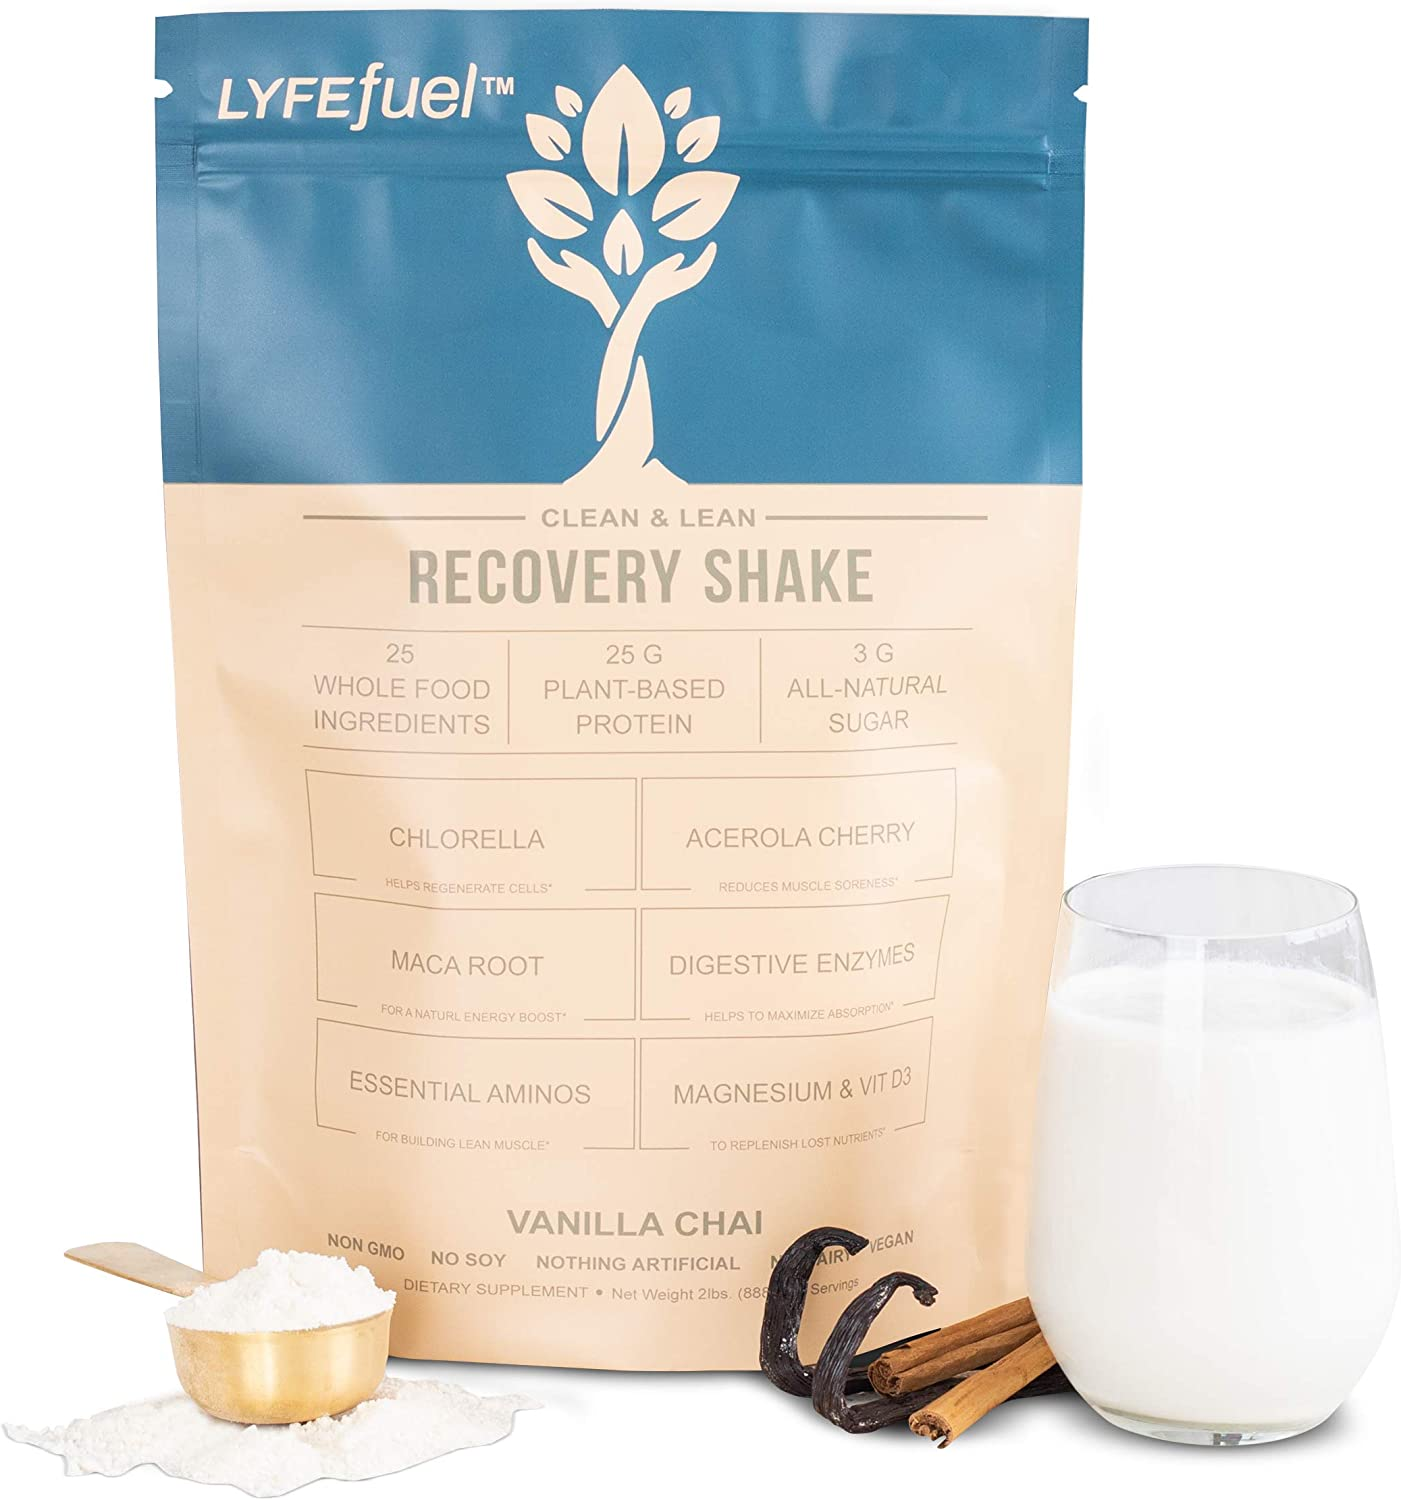 Post-Workout Recovery Shake by LYFE Fuel   All-in-One Sports Nutrition Drink for Rapid Muscle Replenishment   25g Plant Based Protein Powder + Essential Amino Acids & Key Nutrients (Vanilla - 1 lb)